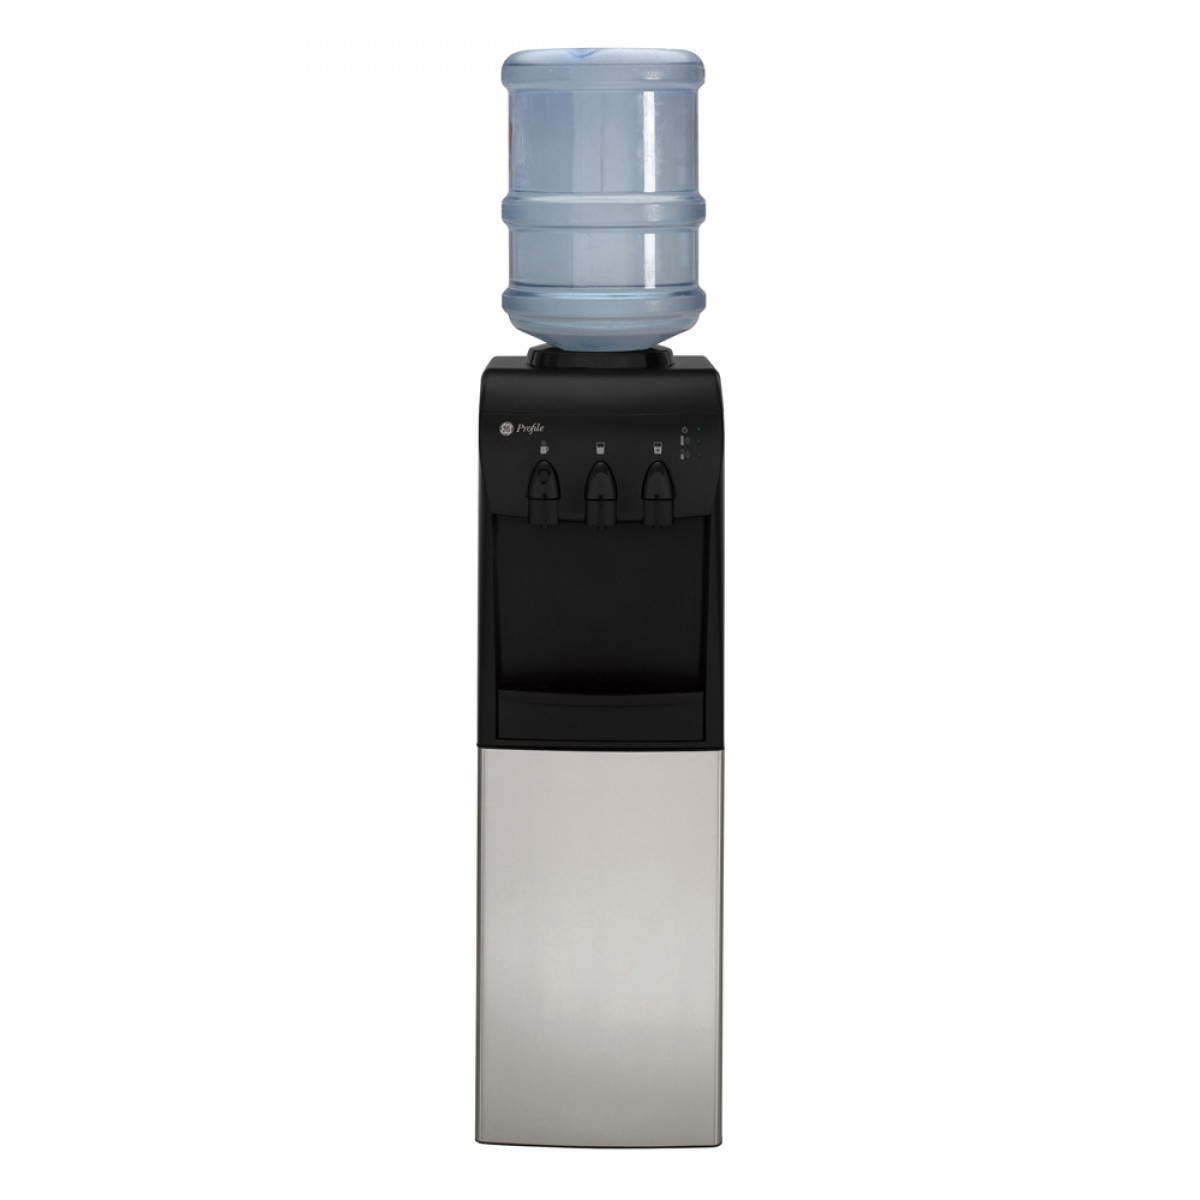 GE Profile PXCR33KSS Hot and Cold Water Dispenser Cooler